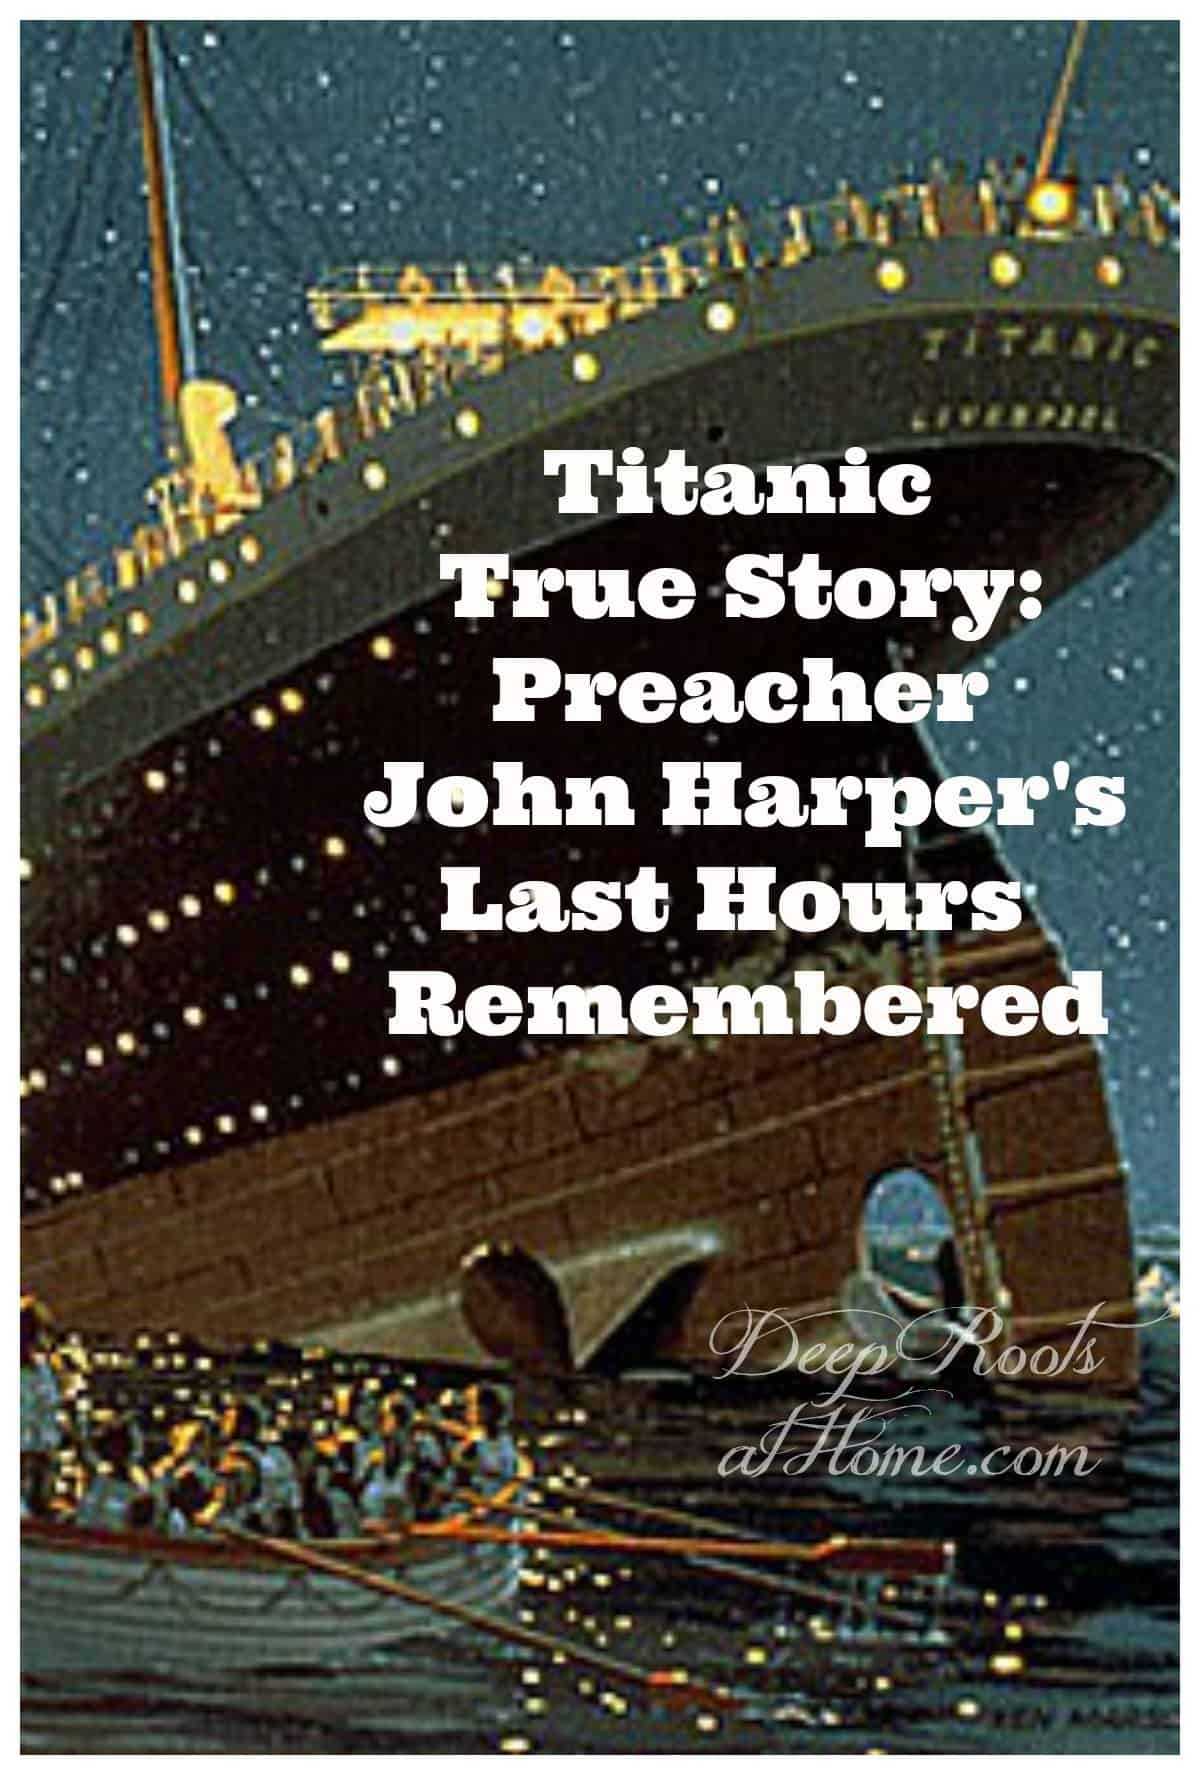 Titanic True Story: Preacher John Harper's Last Hours Remembered. The sinking of the ship.